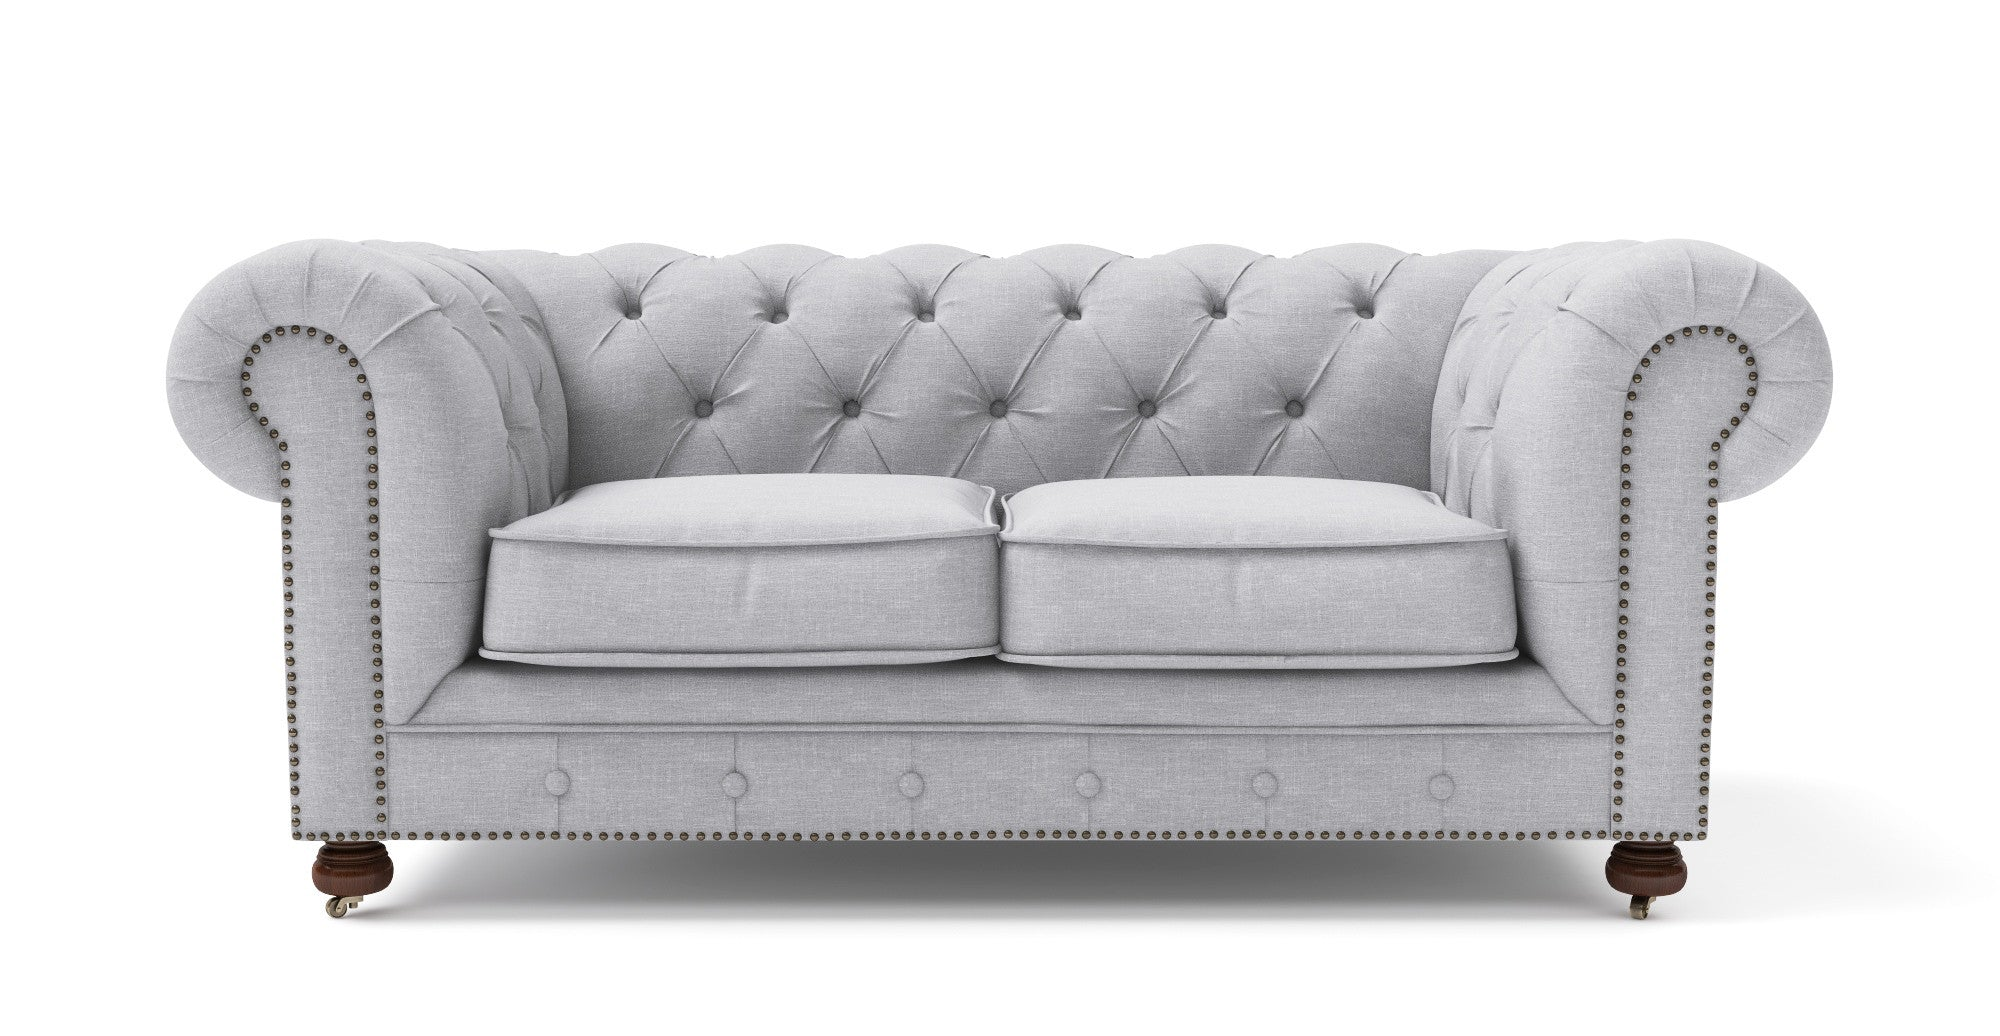 Buy Camden Chesterfield 3 Seater Sofa Online Brosa